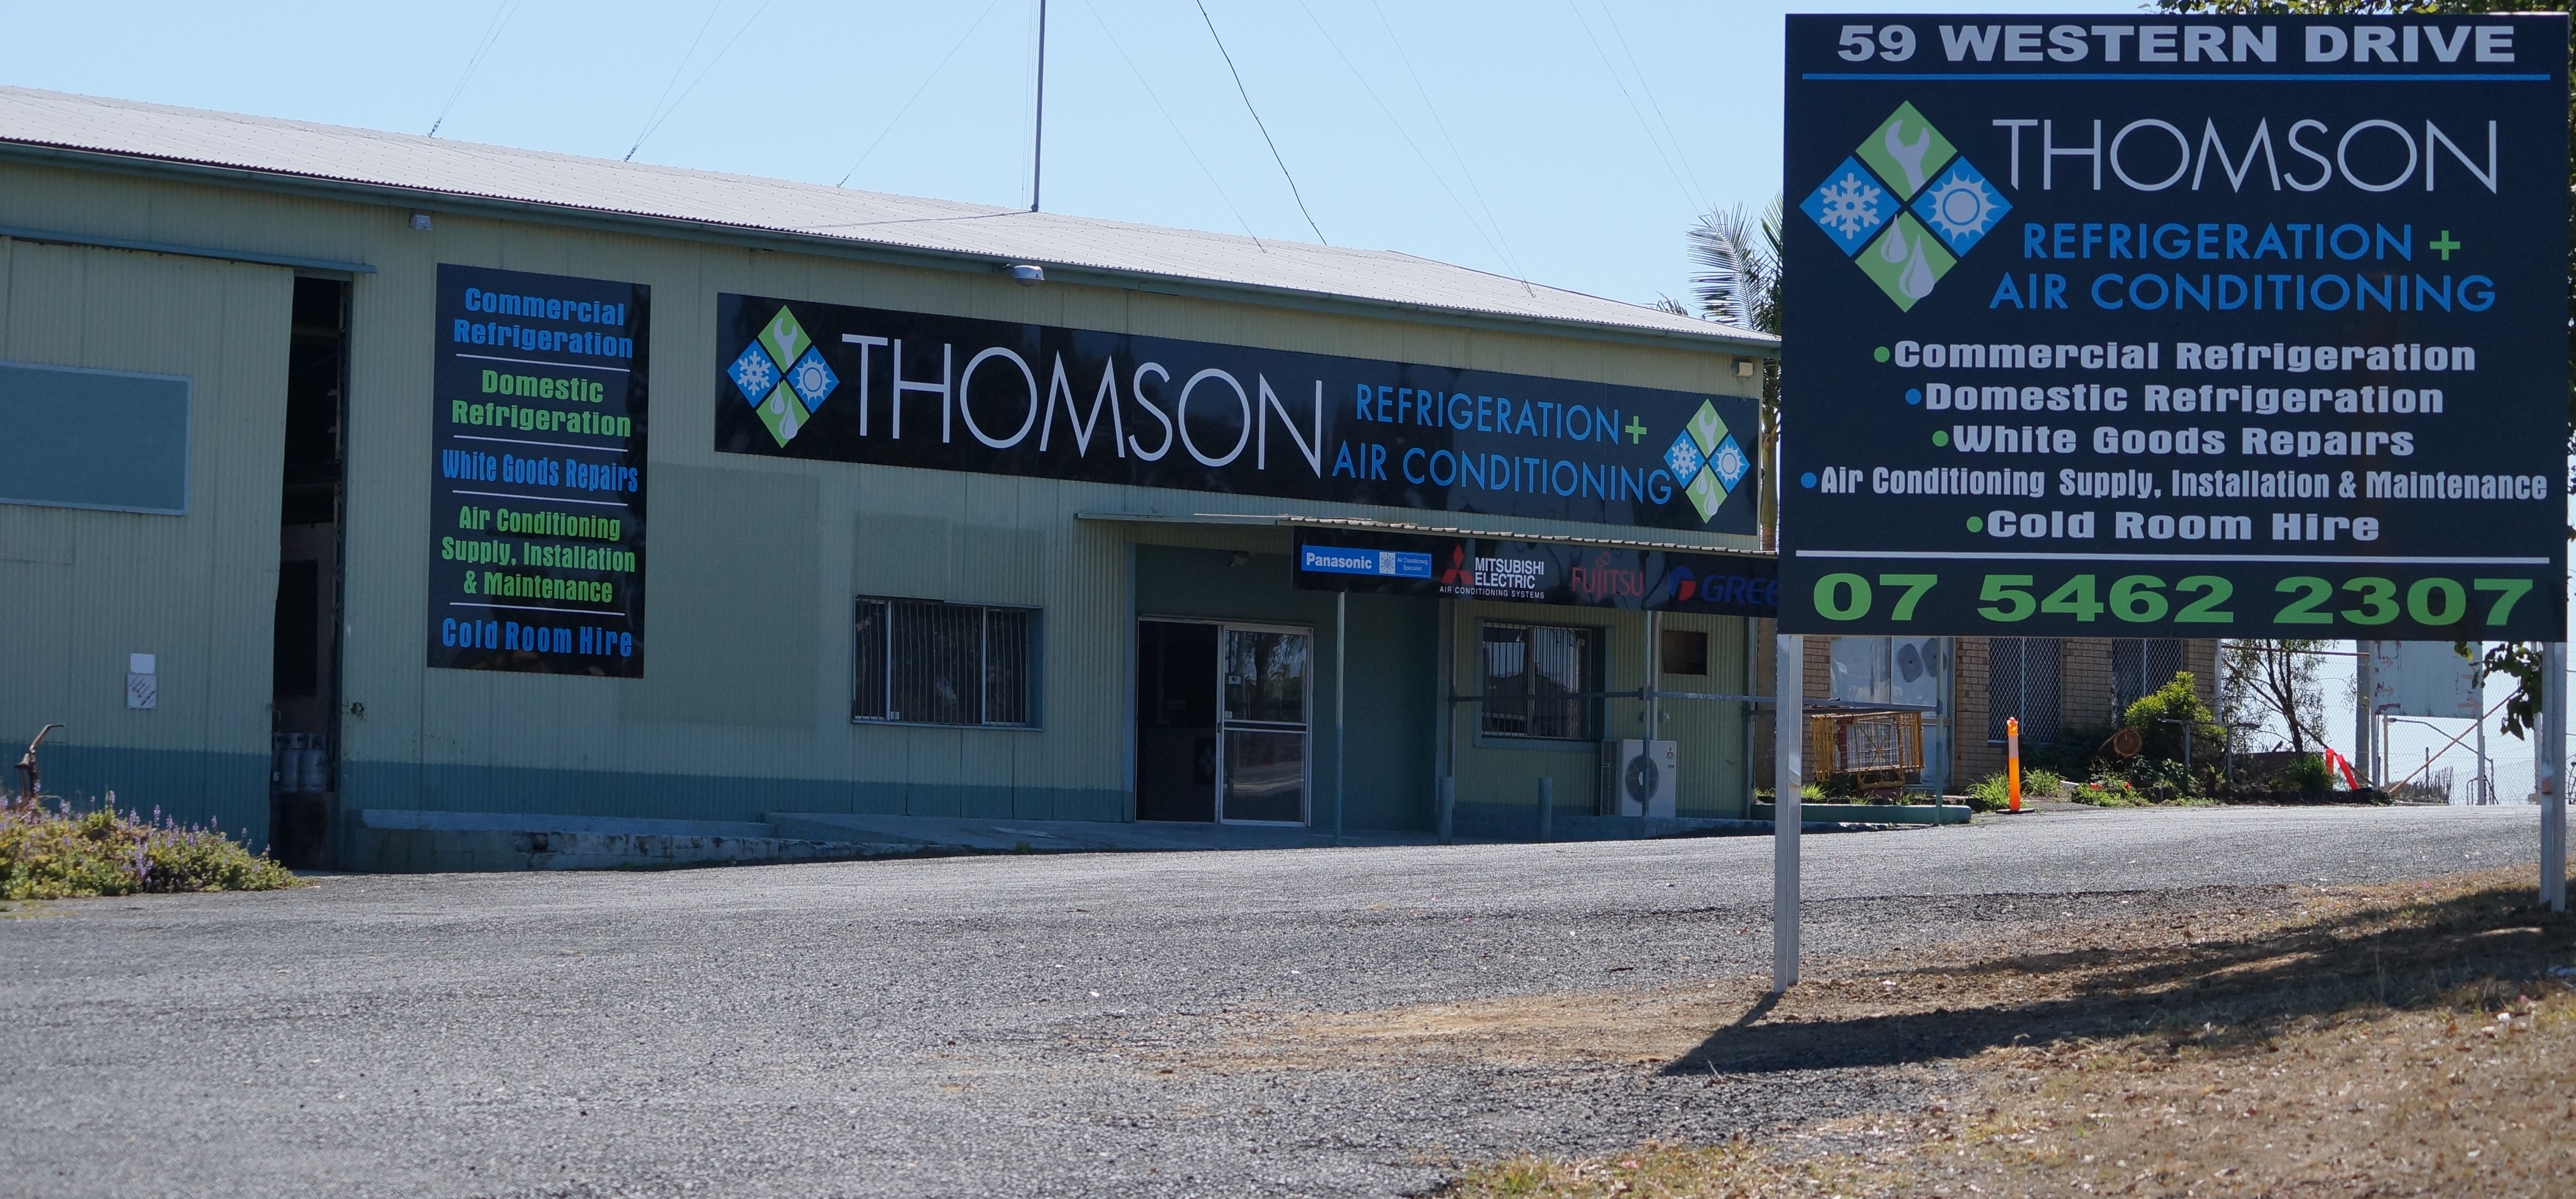 Thomson Refrigeration & Air Conditioning - Commercial